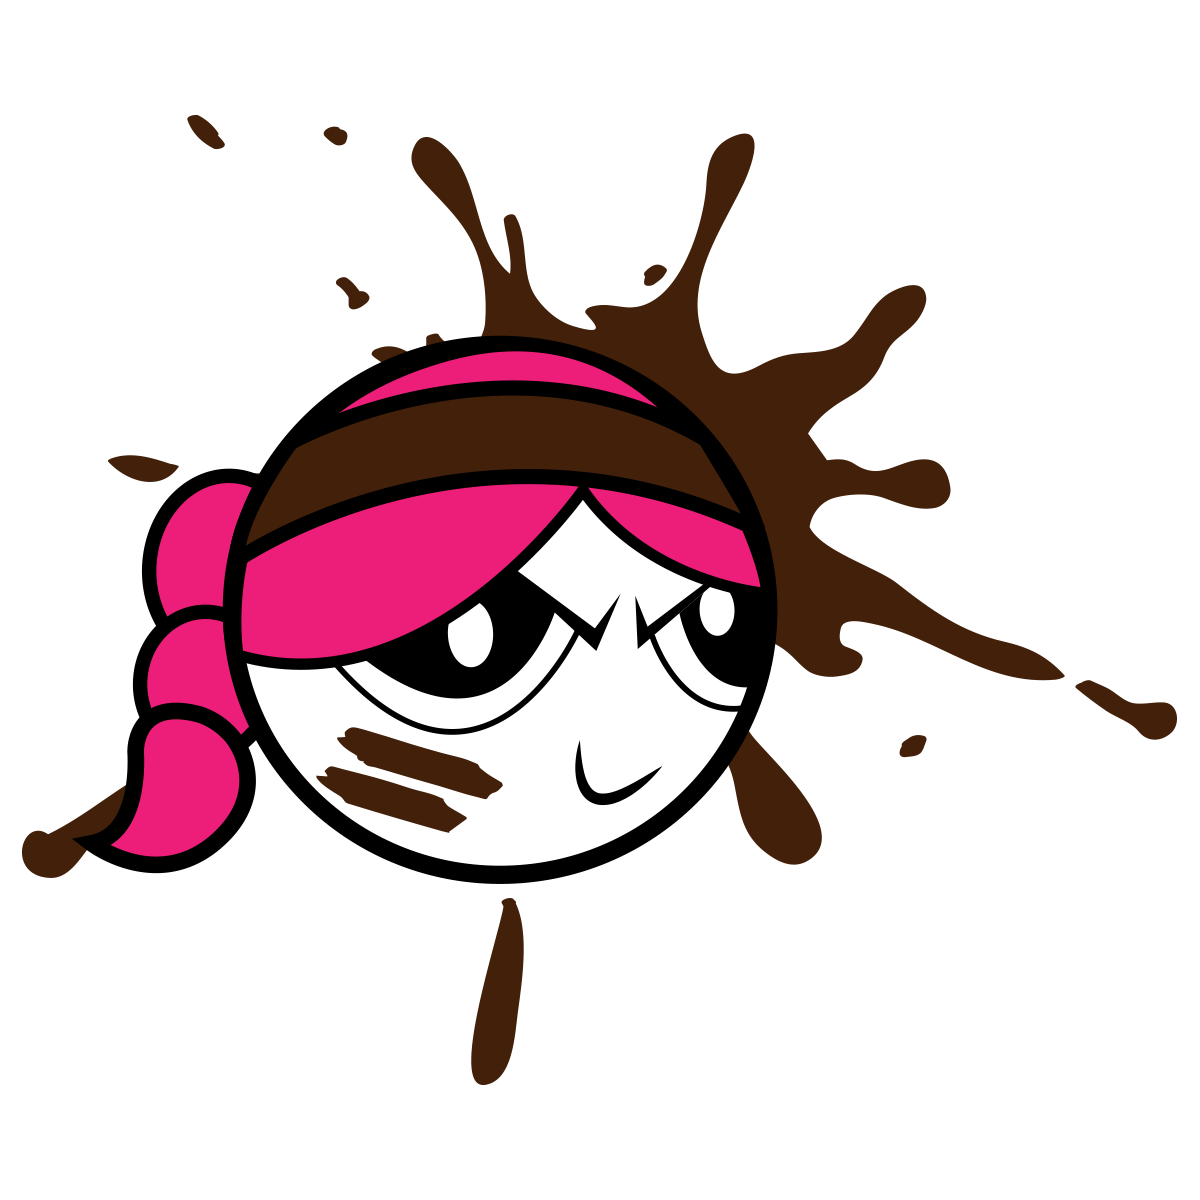 Diver clipart diva. Mud girl la course